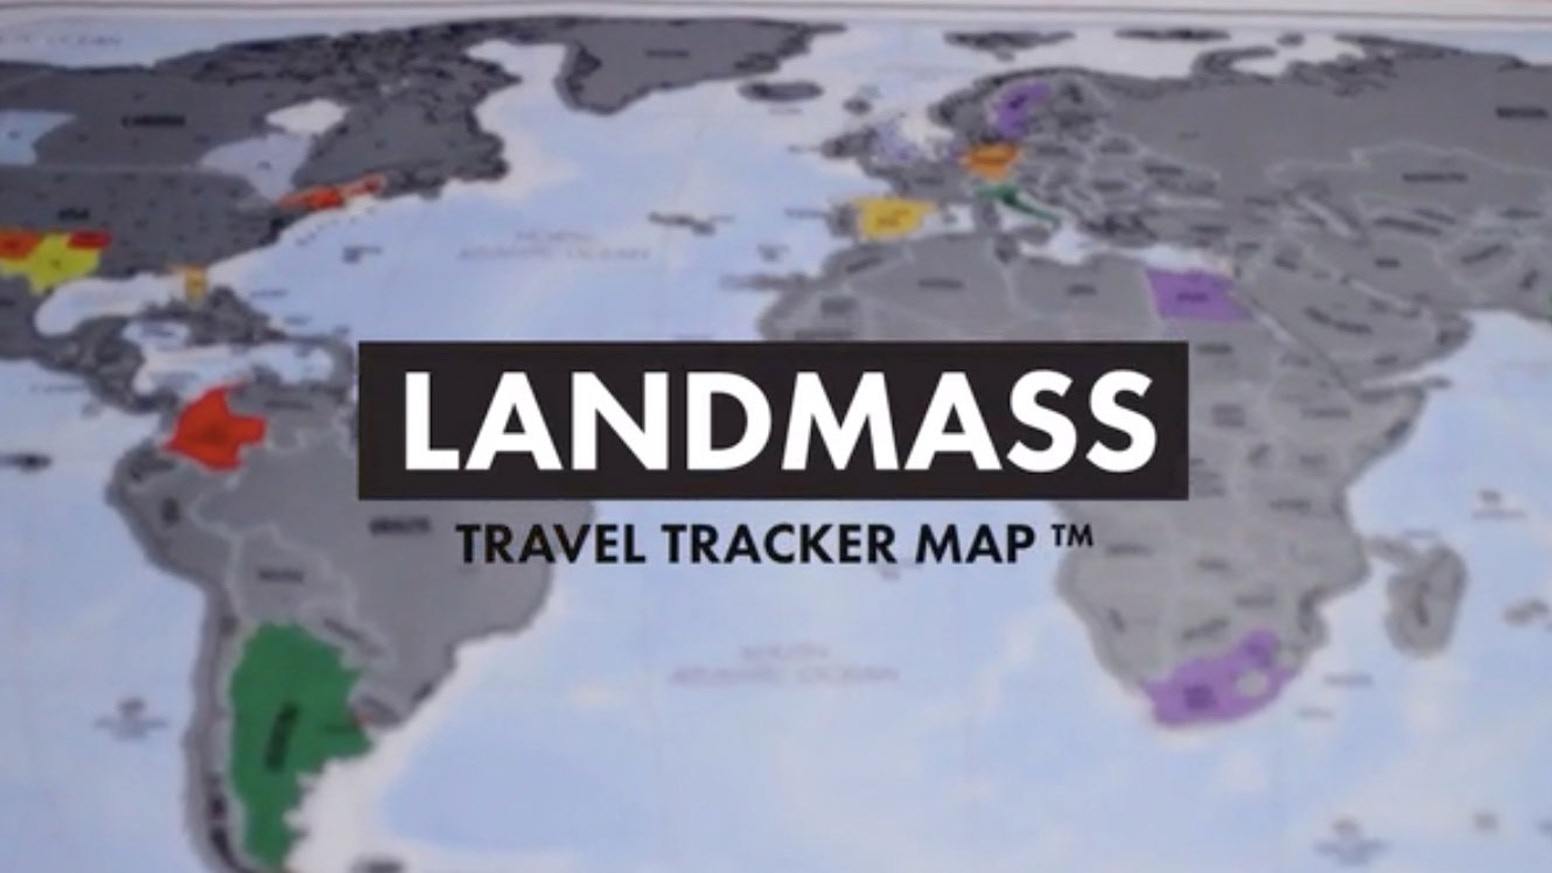 Scratch off your travels with Travel Tracker World Map poster by Landmass. The ultimate personalized world map.